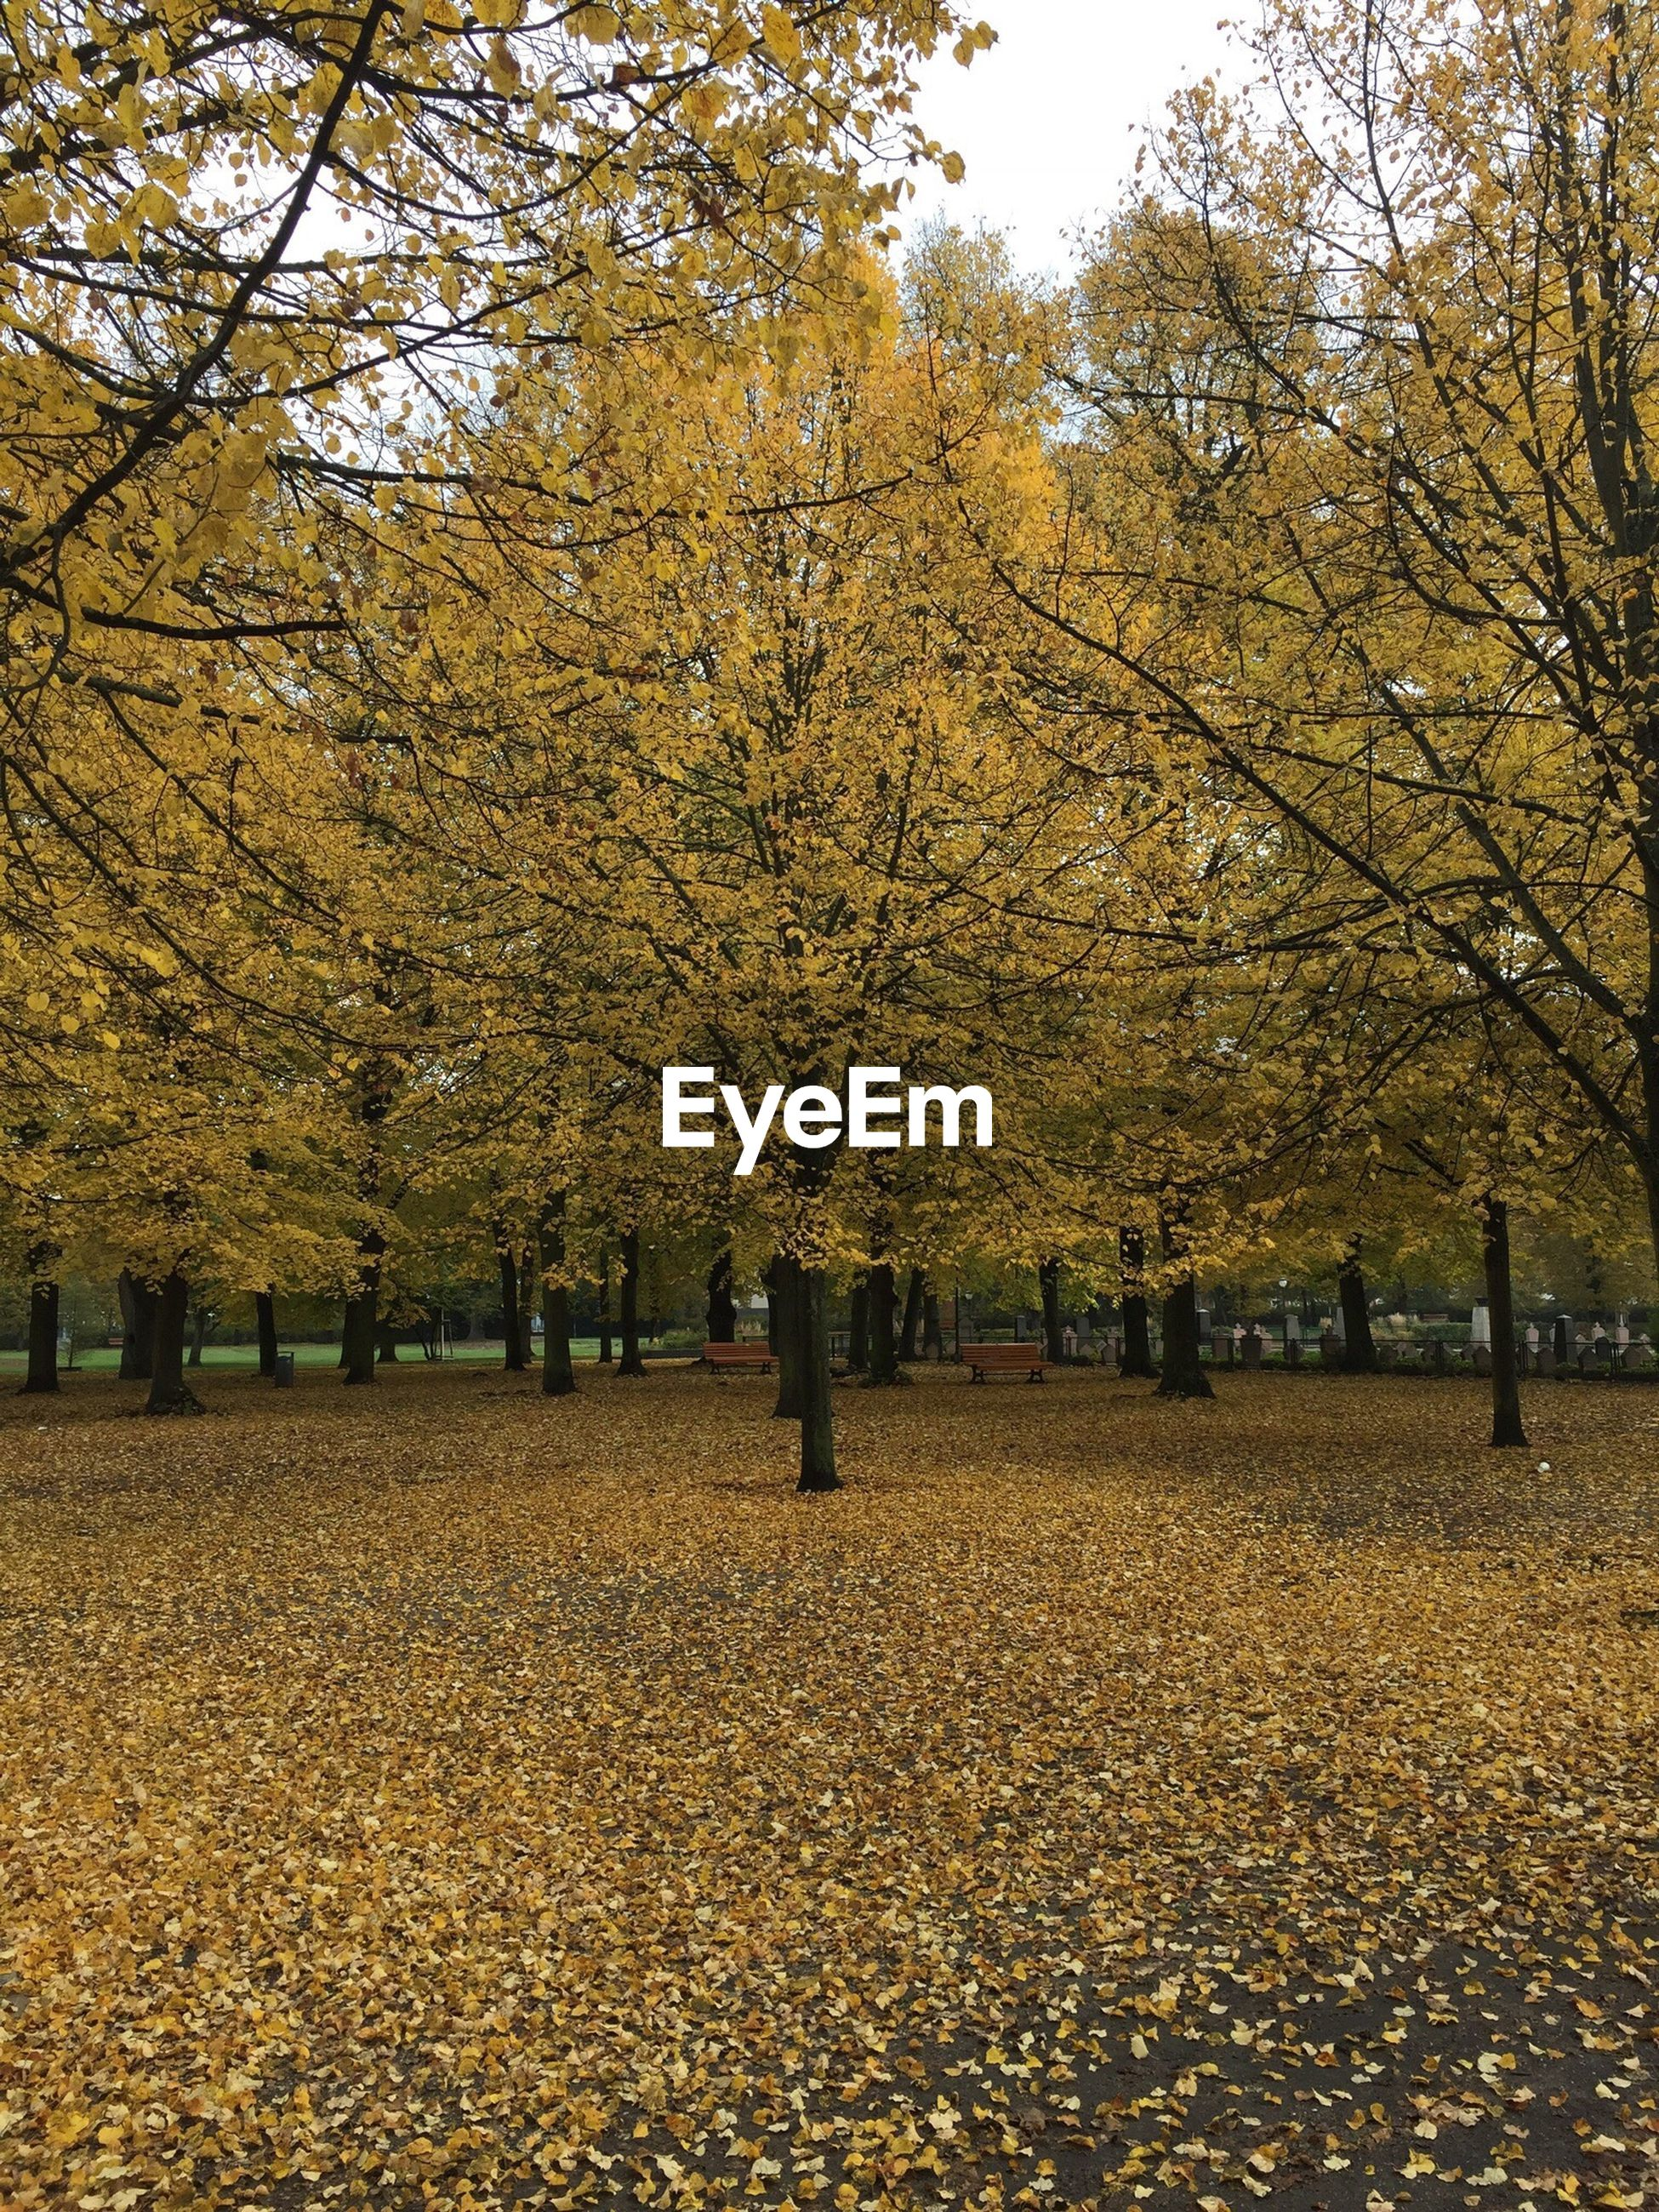 tree, autumn, season, change, yellow, tranquil scene, tranquility, branch, scenics, beauty in nature, tree trunk, nature, growth, non-urban scene, day, solitude, remote, park, abundance, vibrant color, no people, majestic, natural condition, tourism